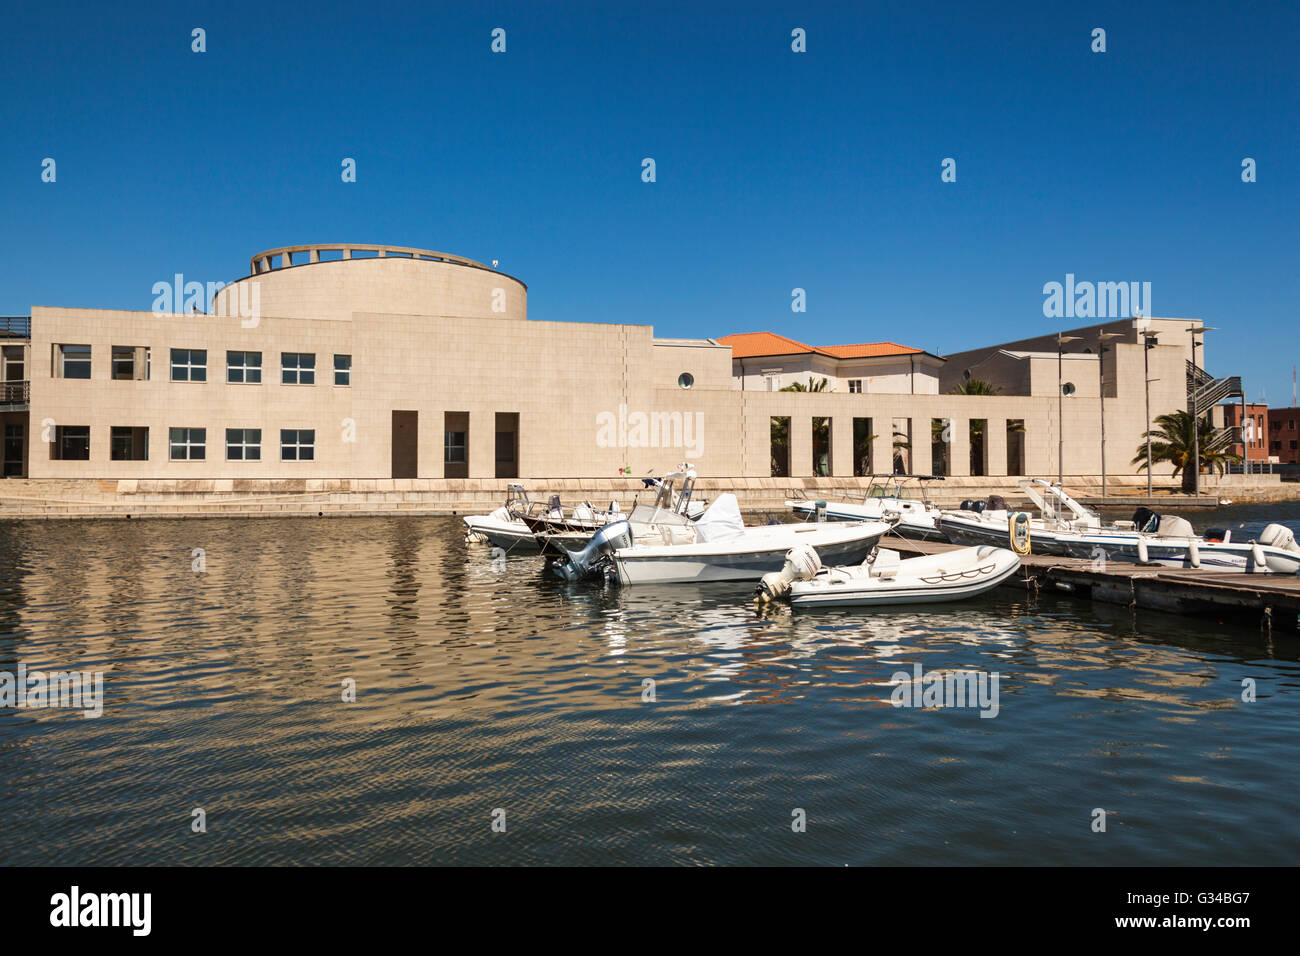 National Archaeology Museum and Museo Del Mare, Olbia, Sardinia, Italy Stock Photo